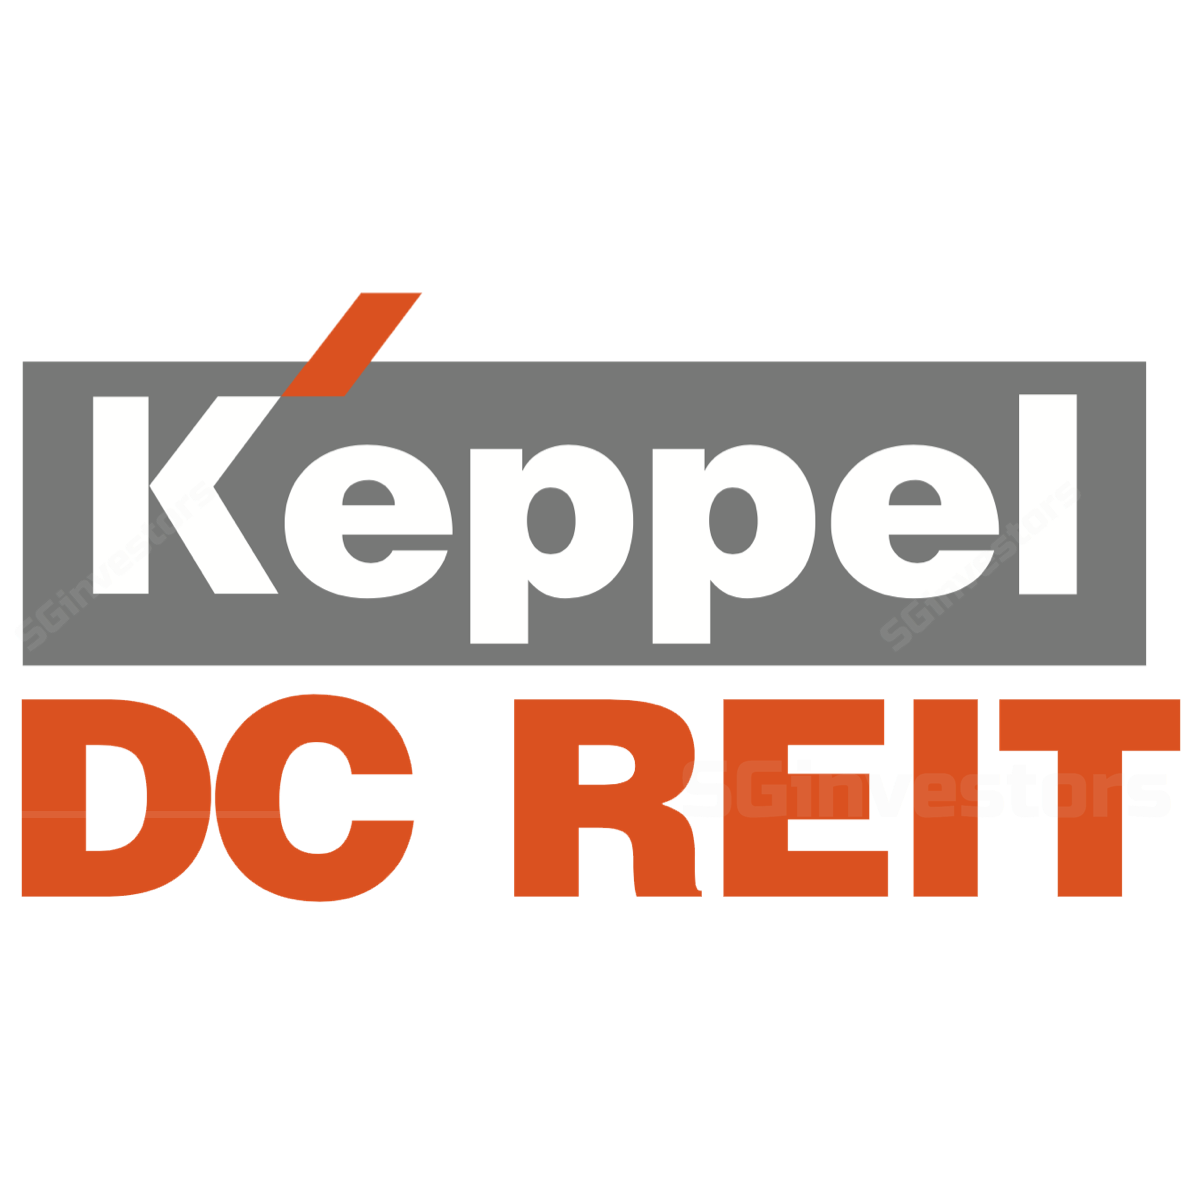 Keppel DC REIT (KDCREIT SP) - DBS Vickers 2017-09-13: Acquisition Of Dataplex In Dublin